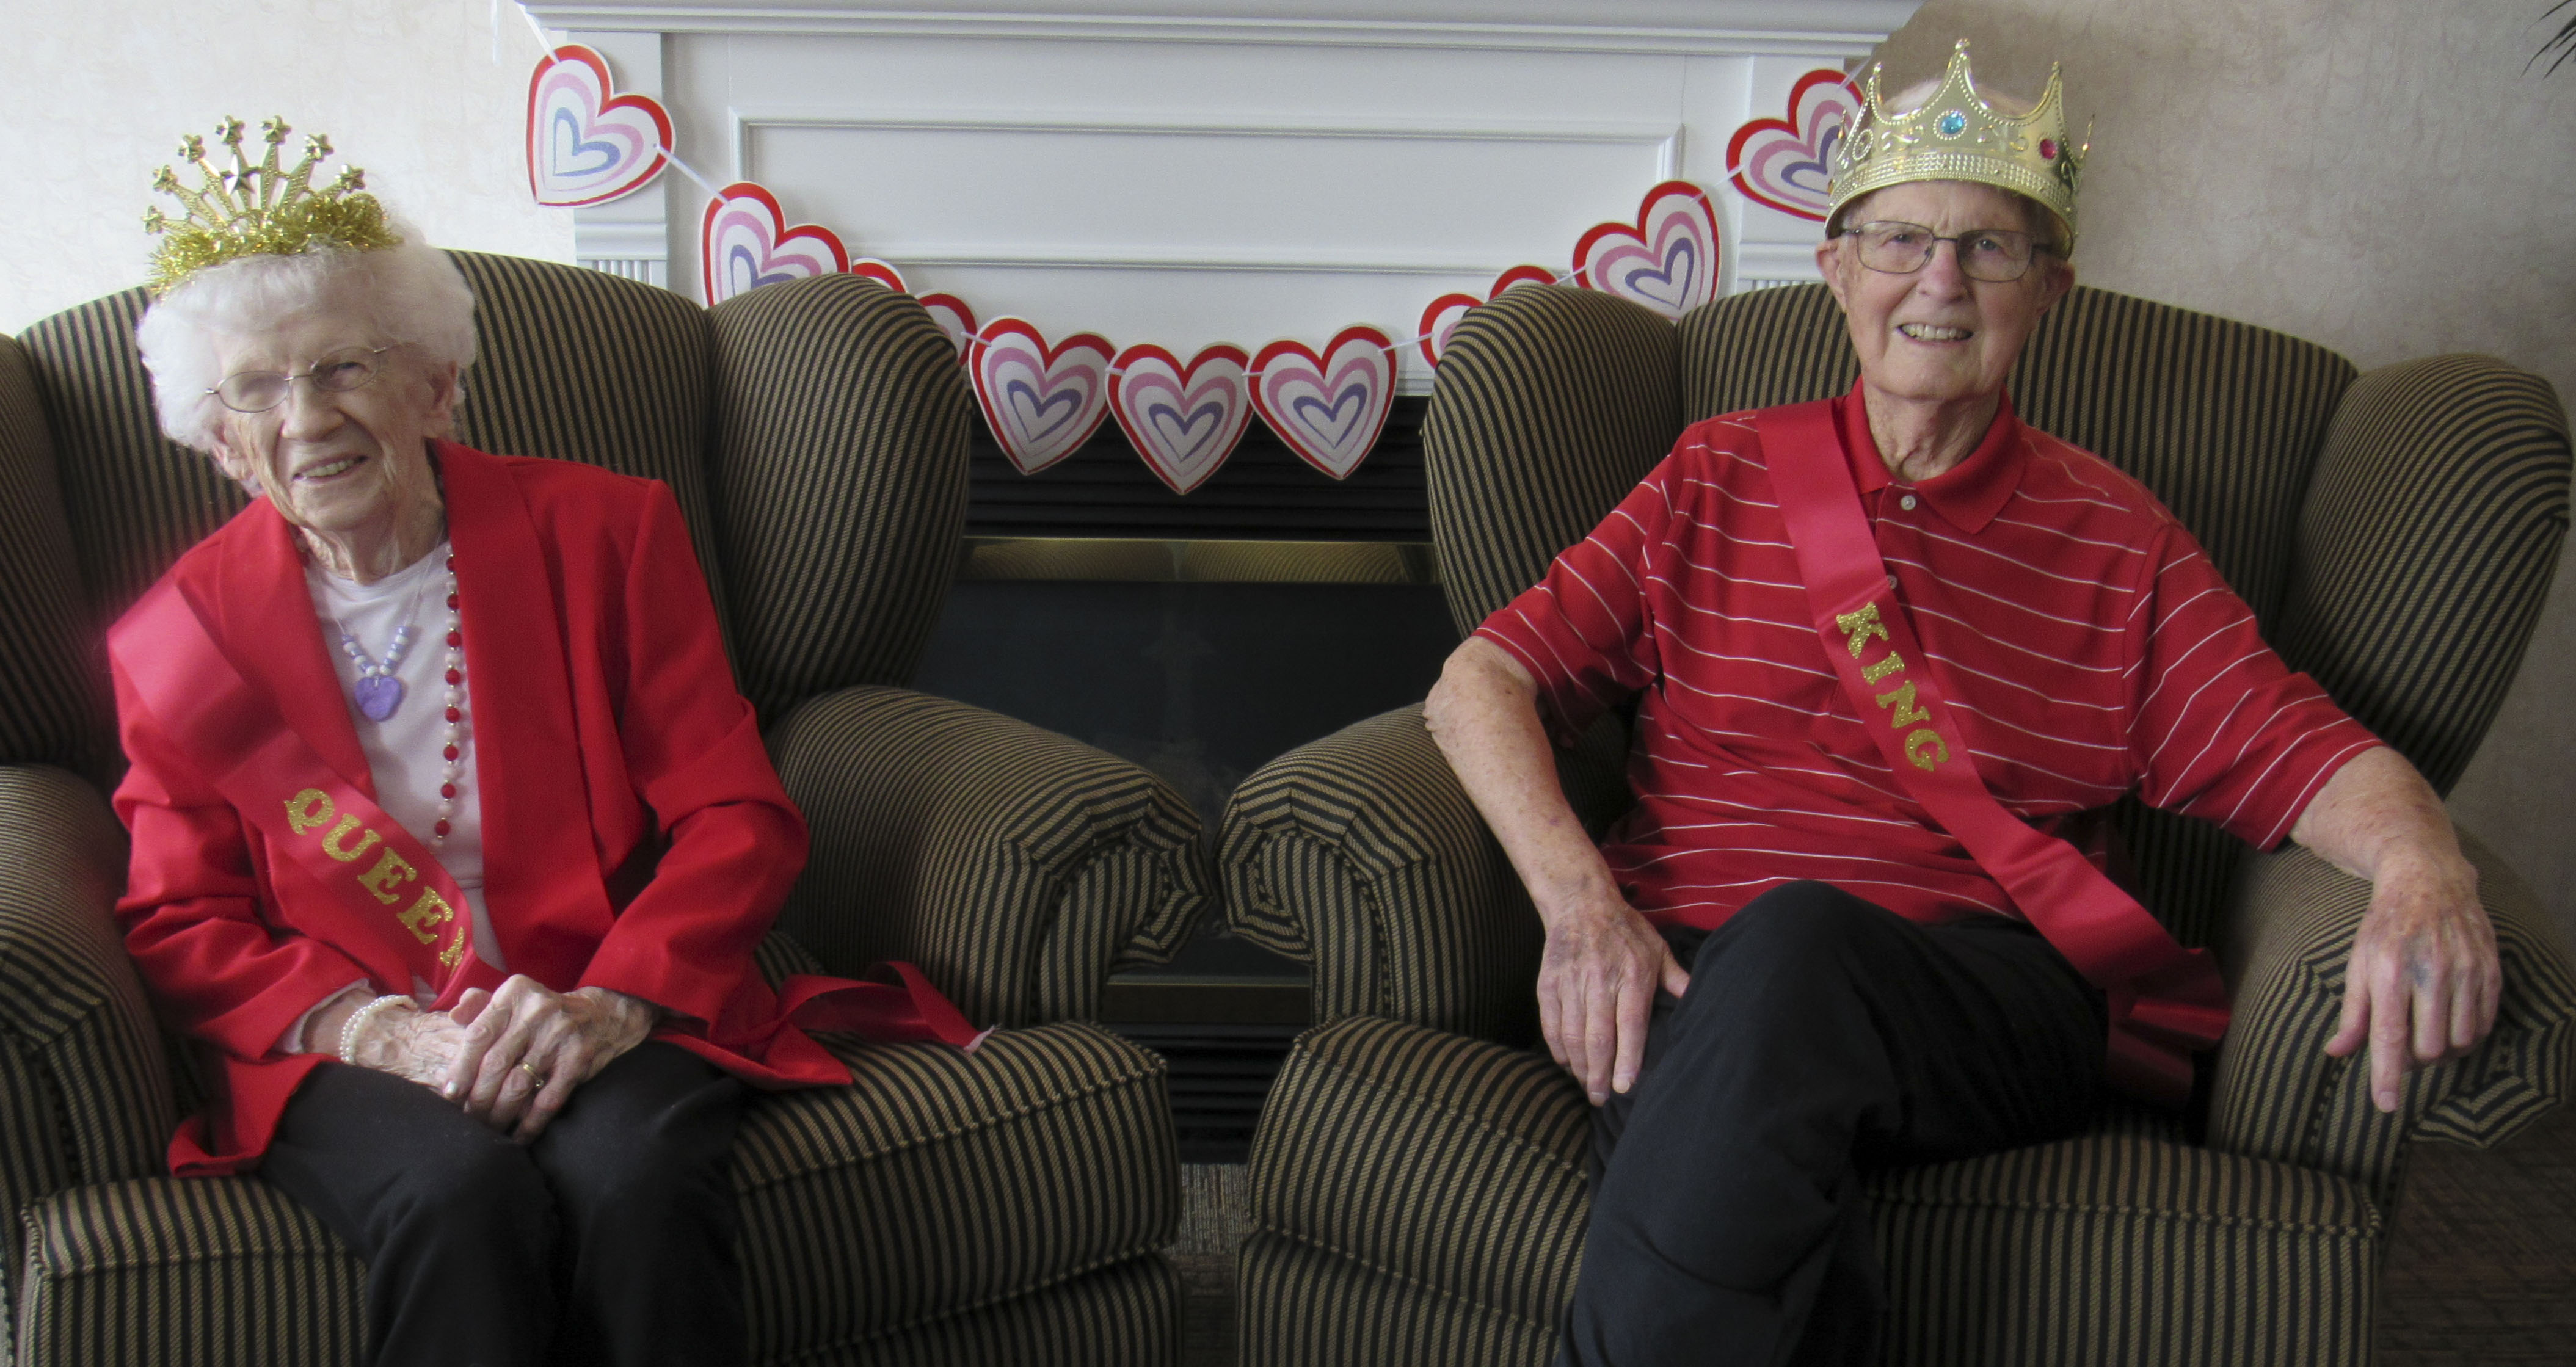 Pennington Square Assisted Living crowned its Valentine's Day King and Queen. From left are Freda Lawrence and Ken Weber. (Photos by Kim Brooks)